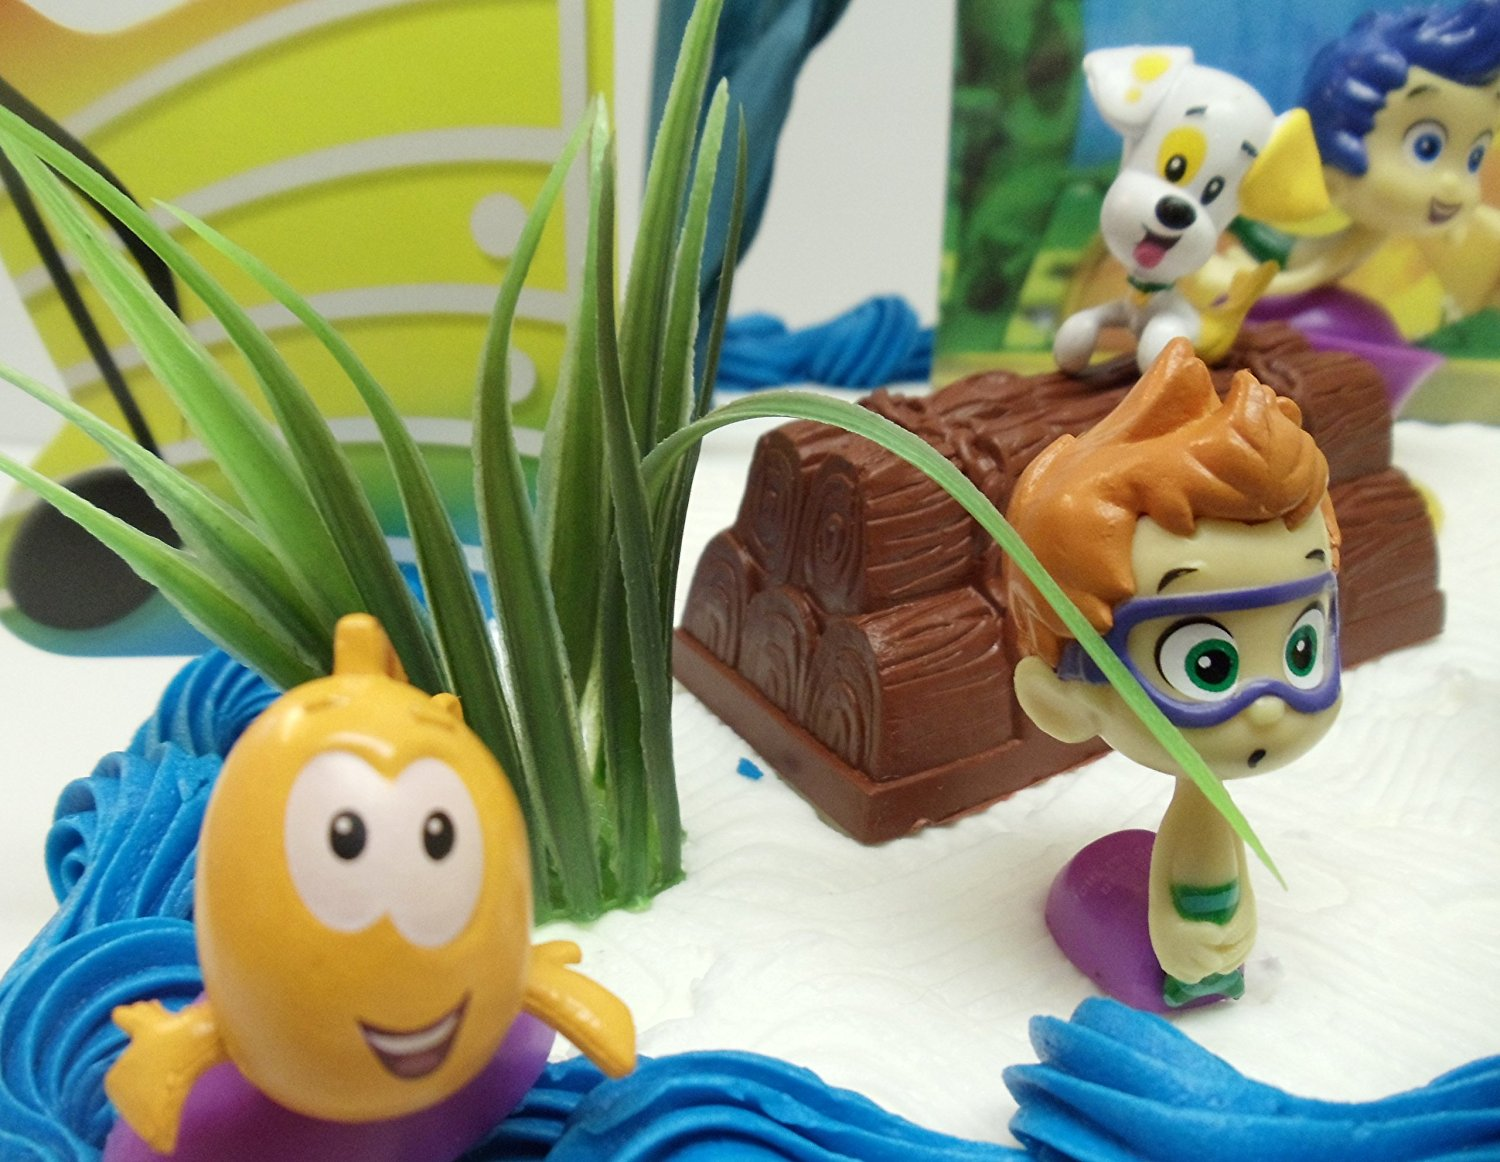 Pleasant Bubble Guppies 20 Piece Birthday Cake Topper Set Featuring Gil Personalised Birthday Cards Veneteletsinfo